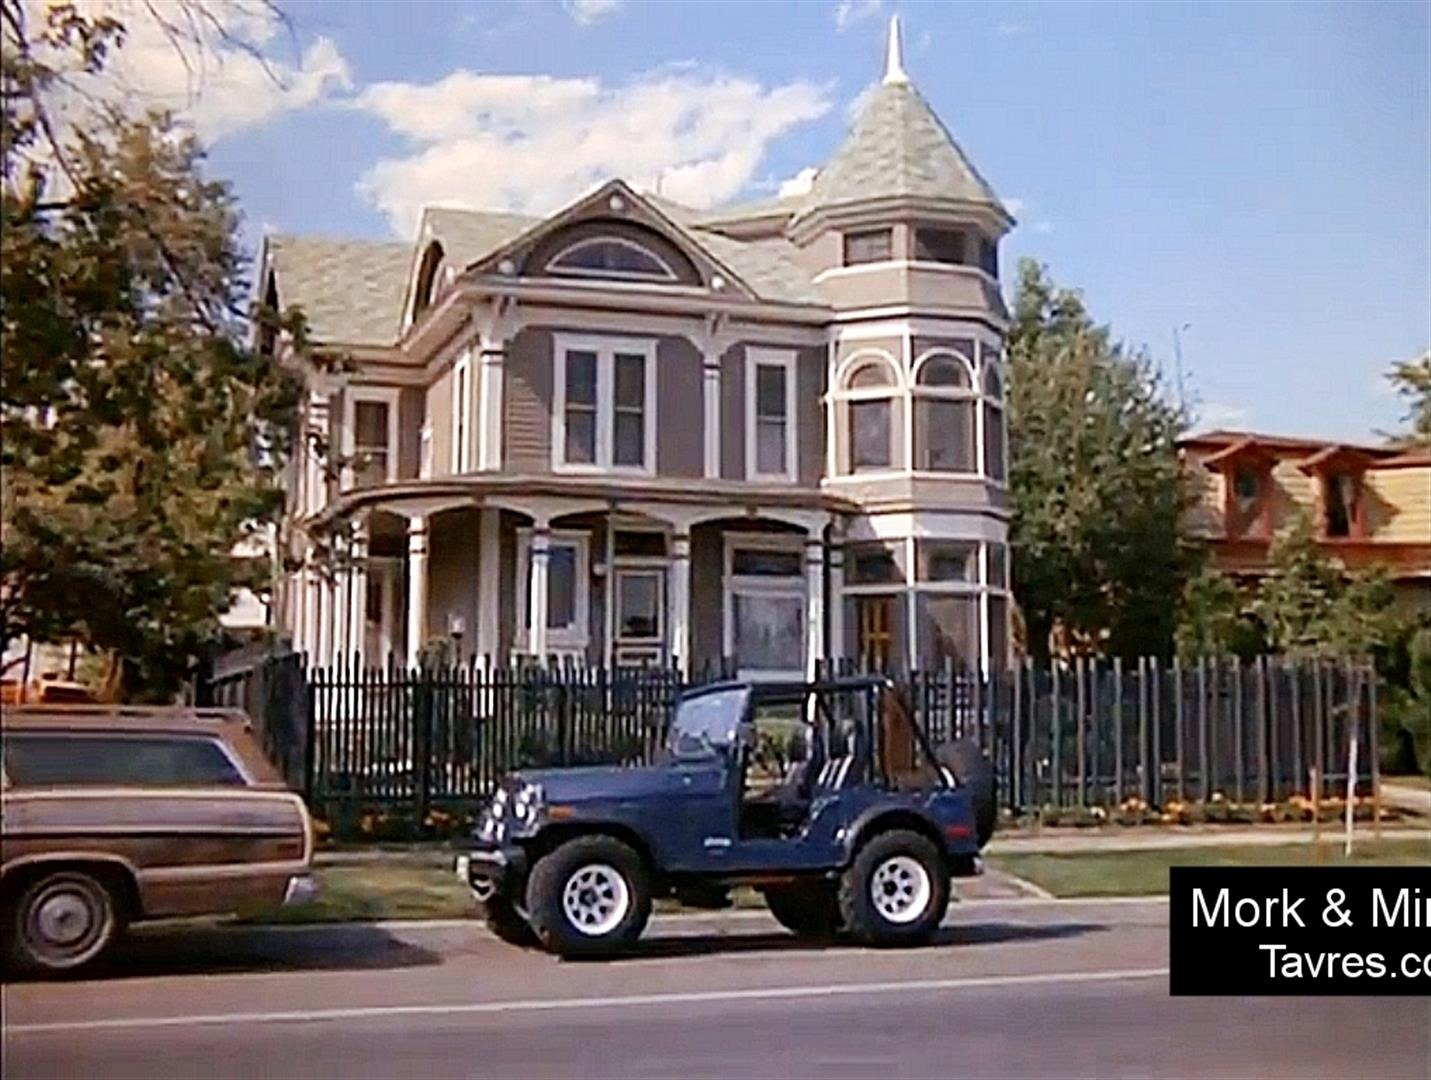 Mork & Mindy's house